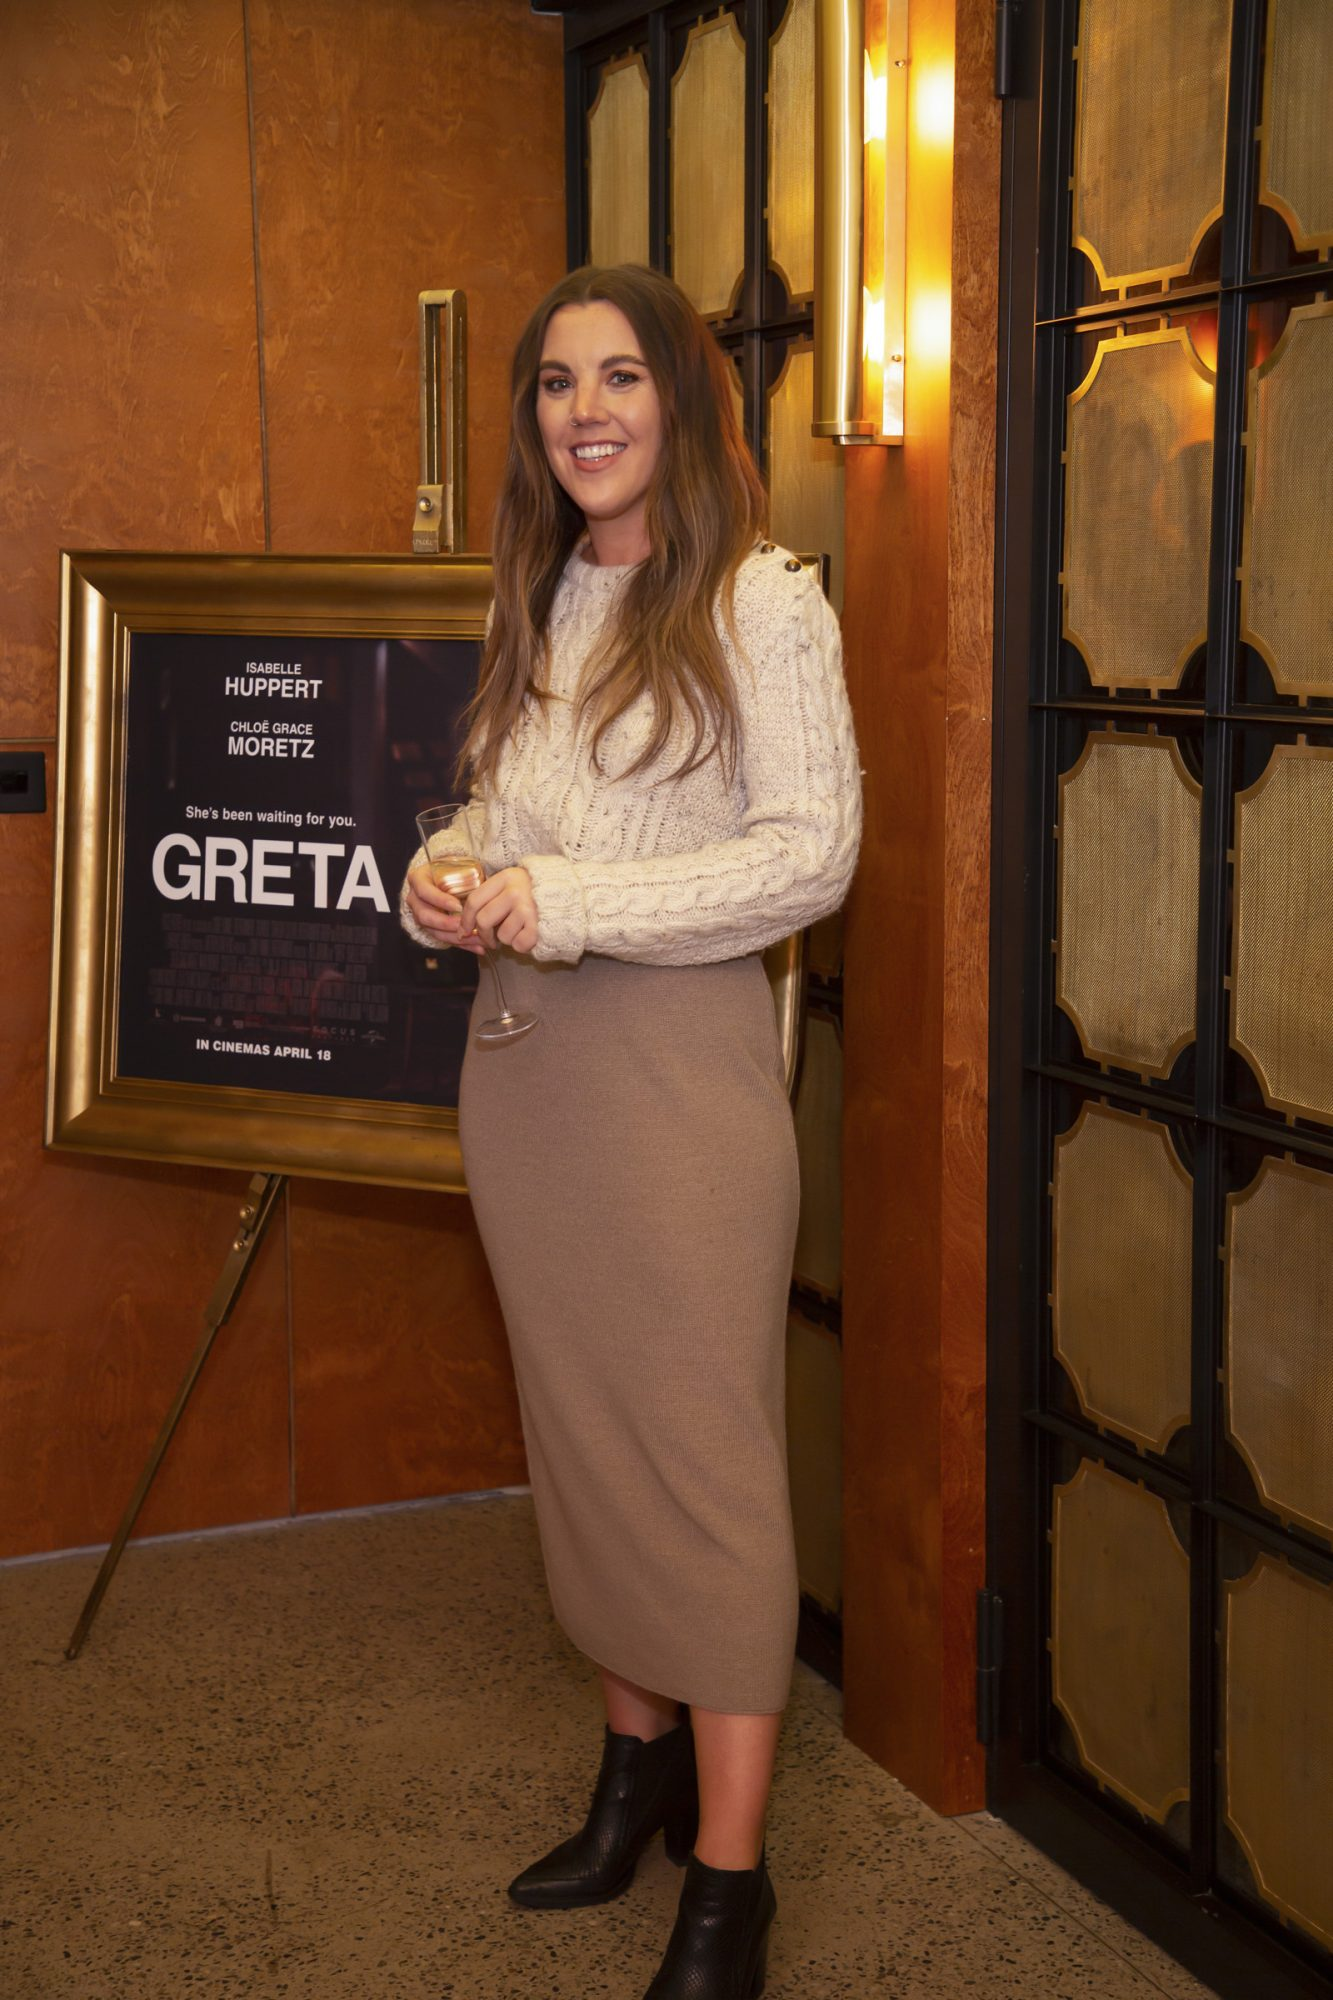 Sarah Hanrahan pictured at a special preview screening of GRETA at The Stella Theatre, Ranelagh. GRETA, directed by Academy Award®-winner Neil Jordan and starring Chloë Grace Moretz and Isabelle Huppert, hits cinemas across Ireland this Thursday 18th April. Photo: Anthony Woods